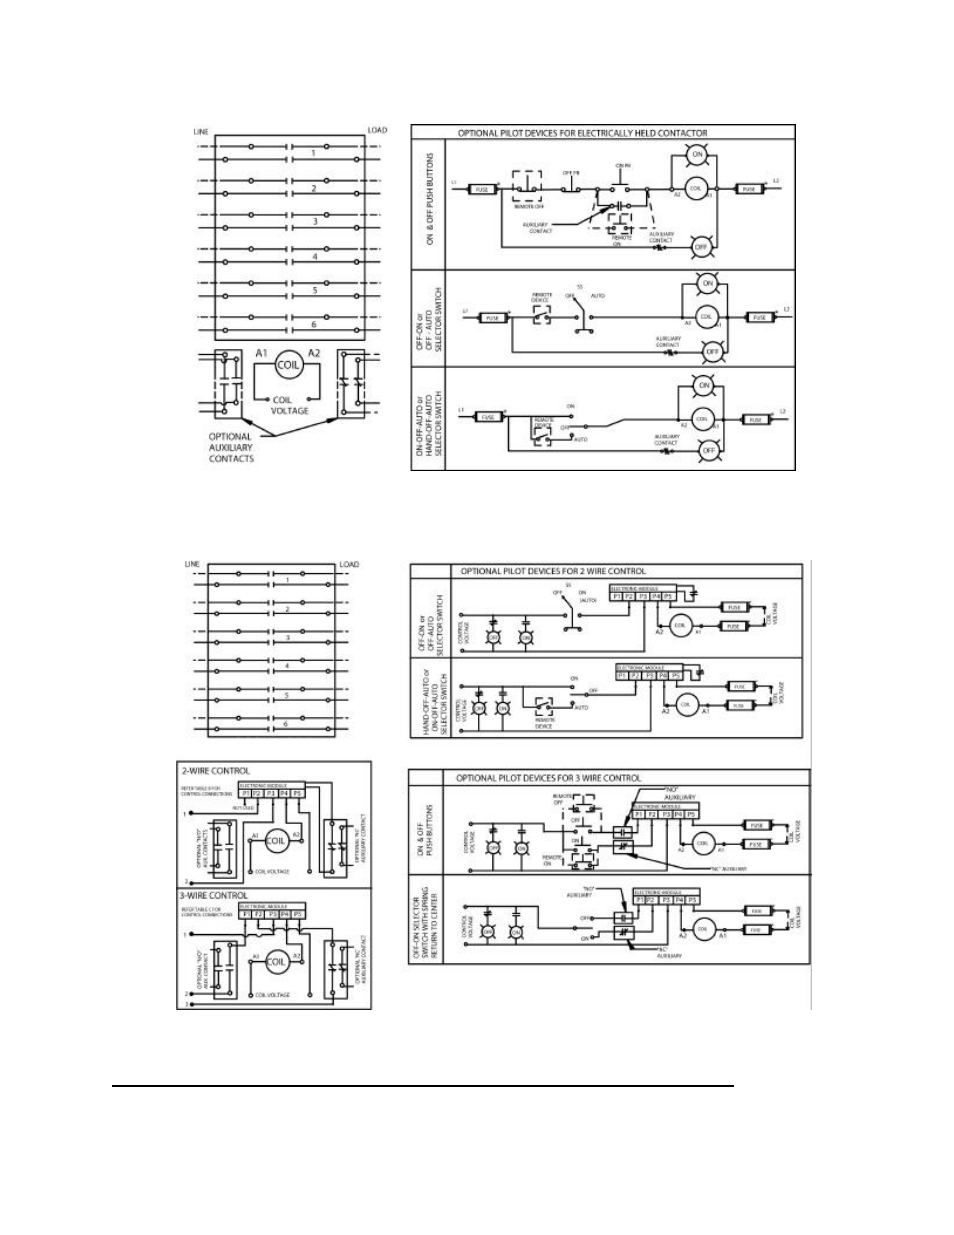 Diagram Diagram Ge Lighting Contactor Wiring Diagrams Full